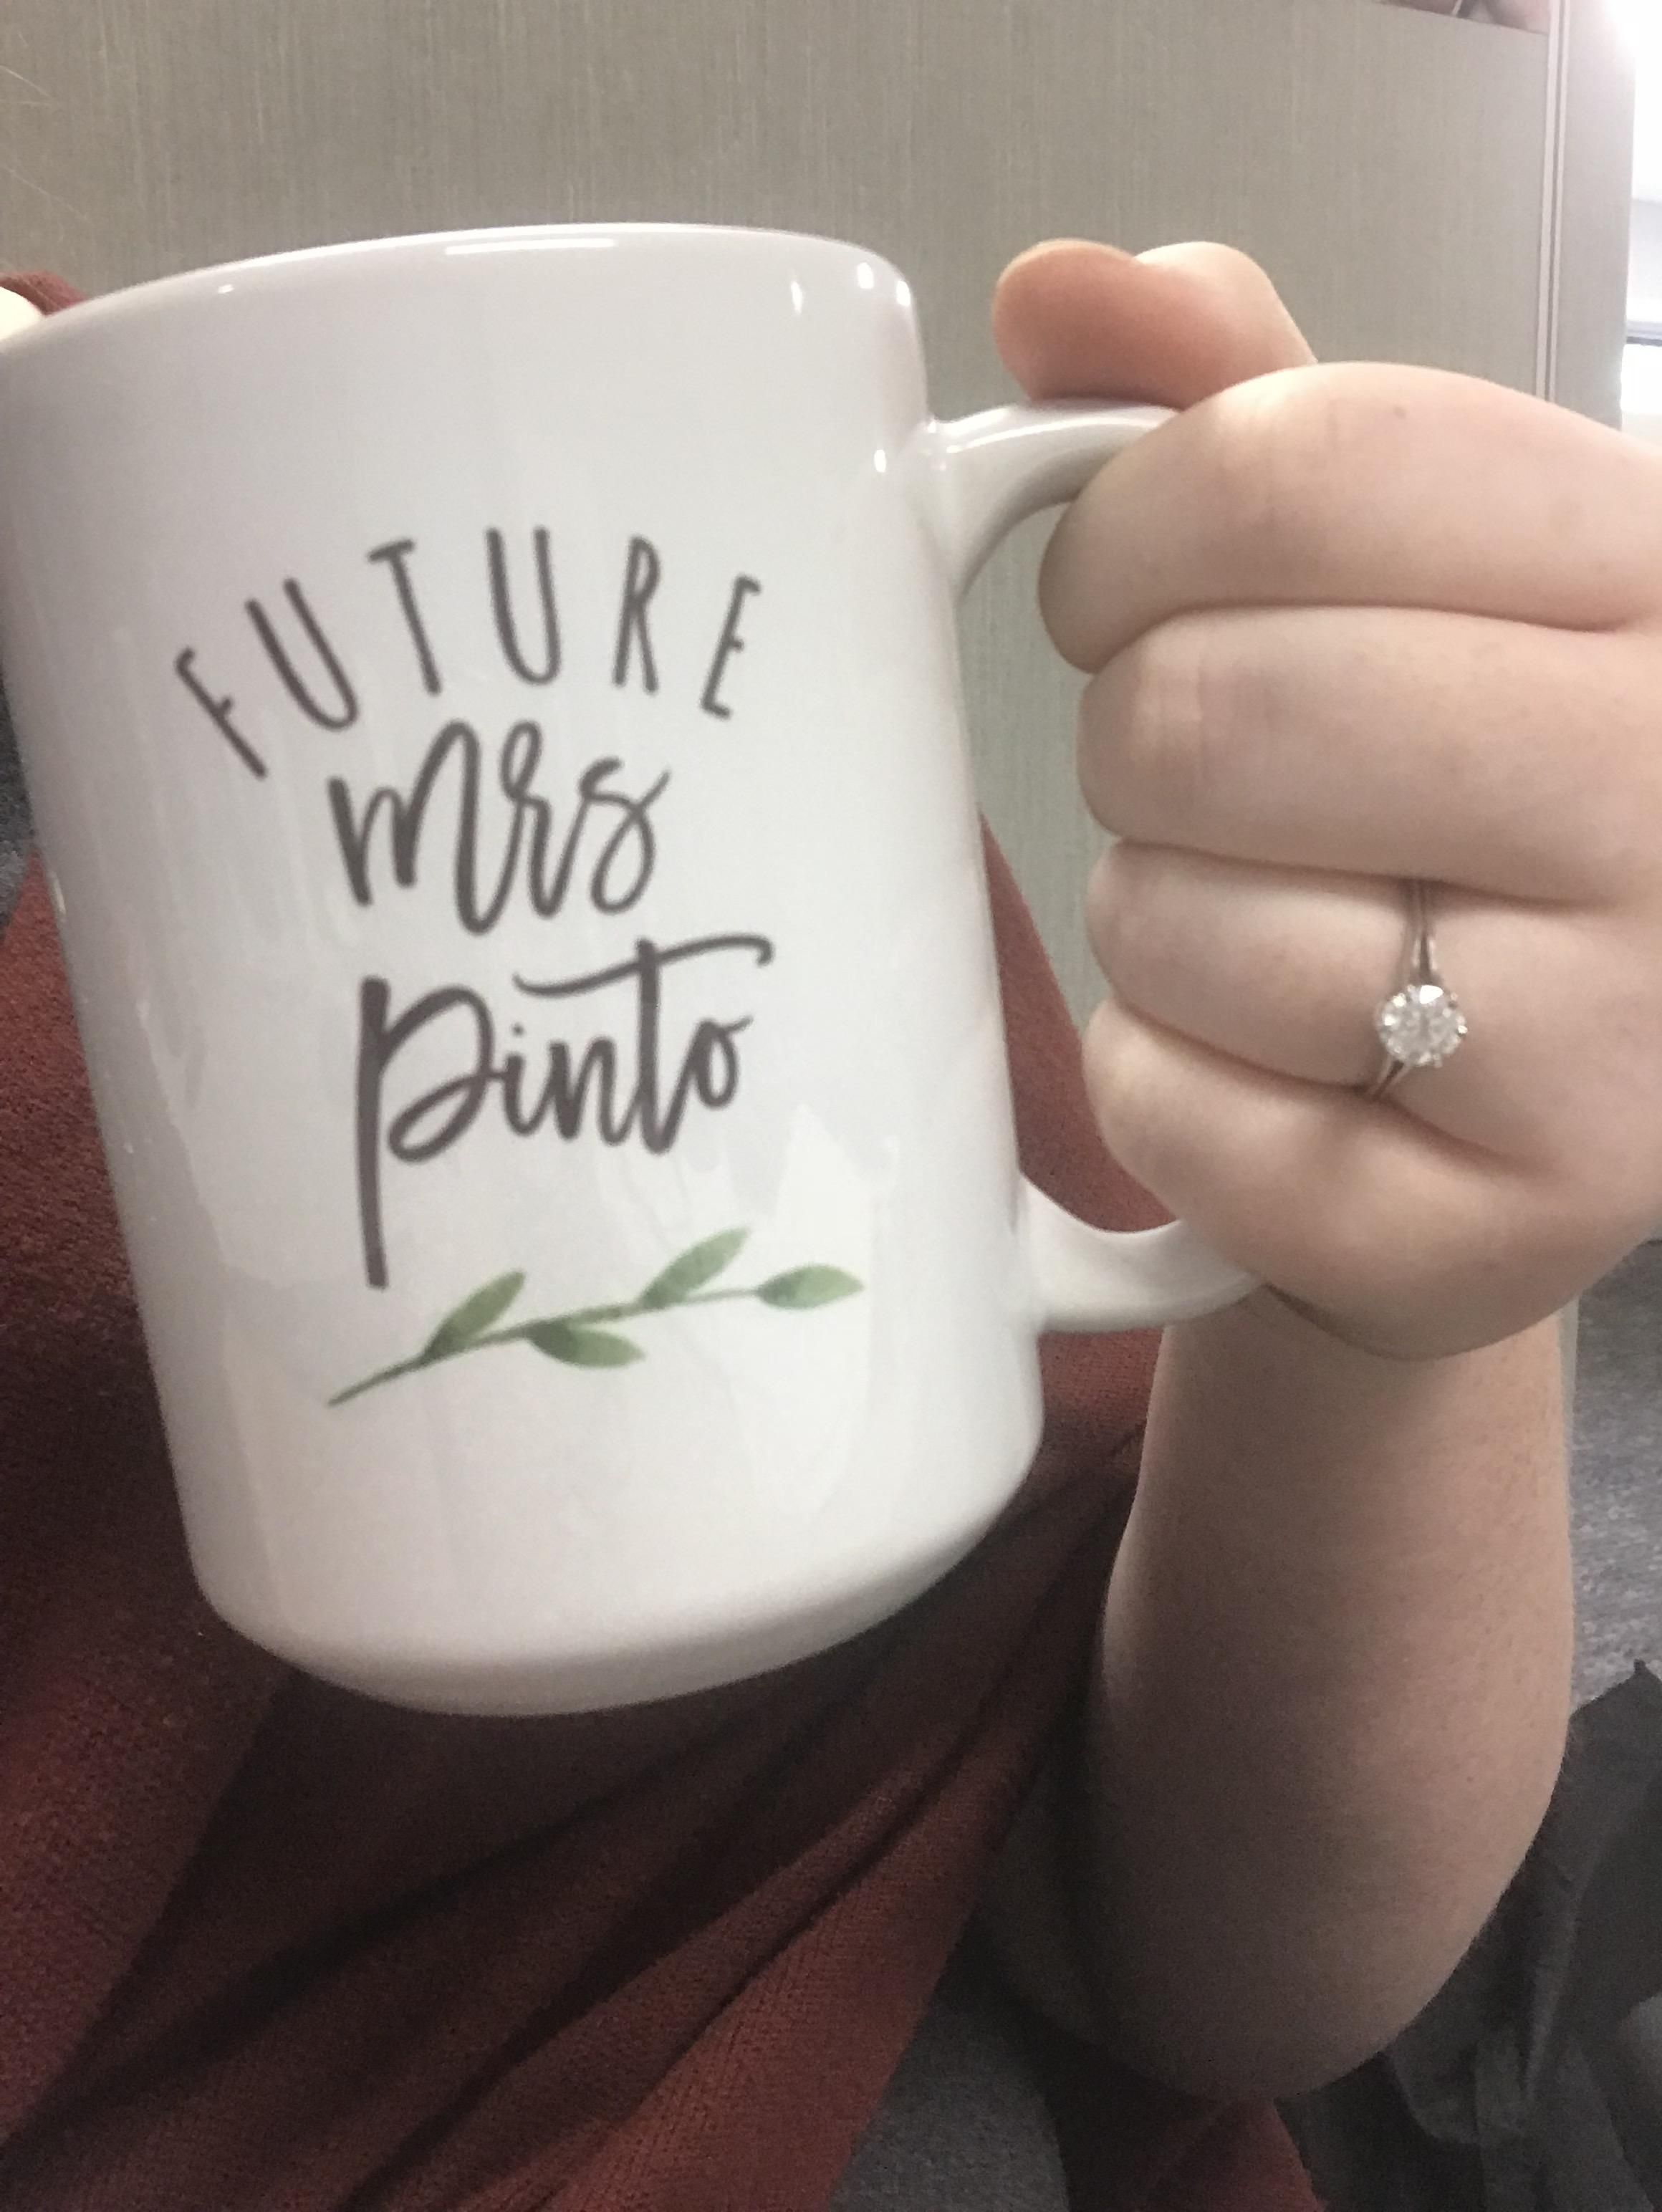 Engaged two weeks ago! Any funny/punny hashtag ideas with